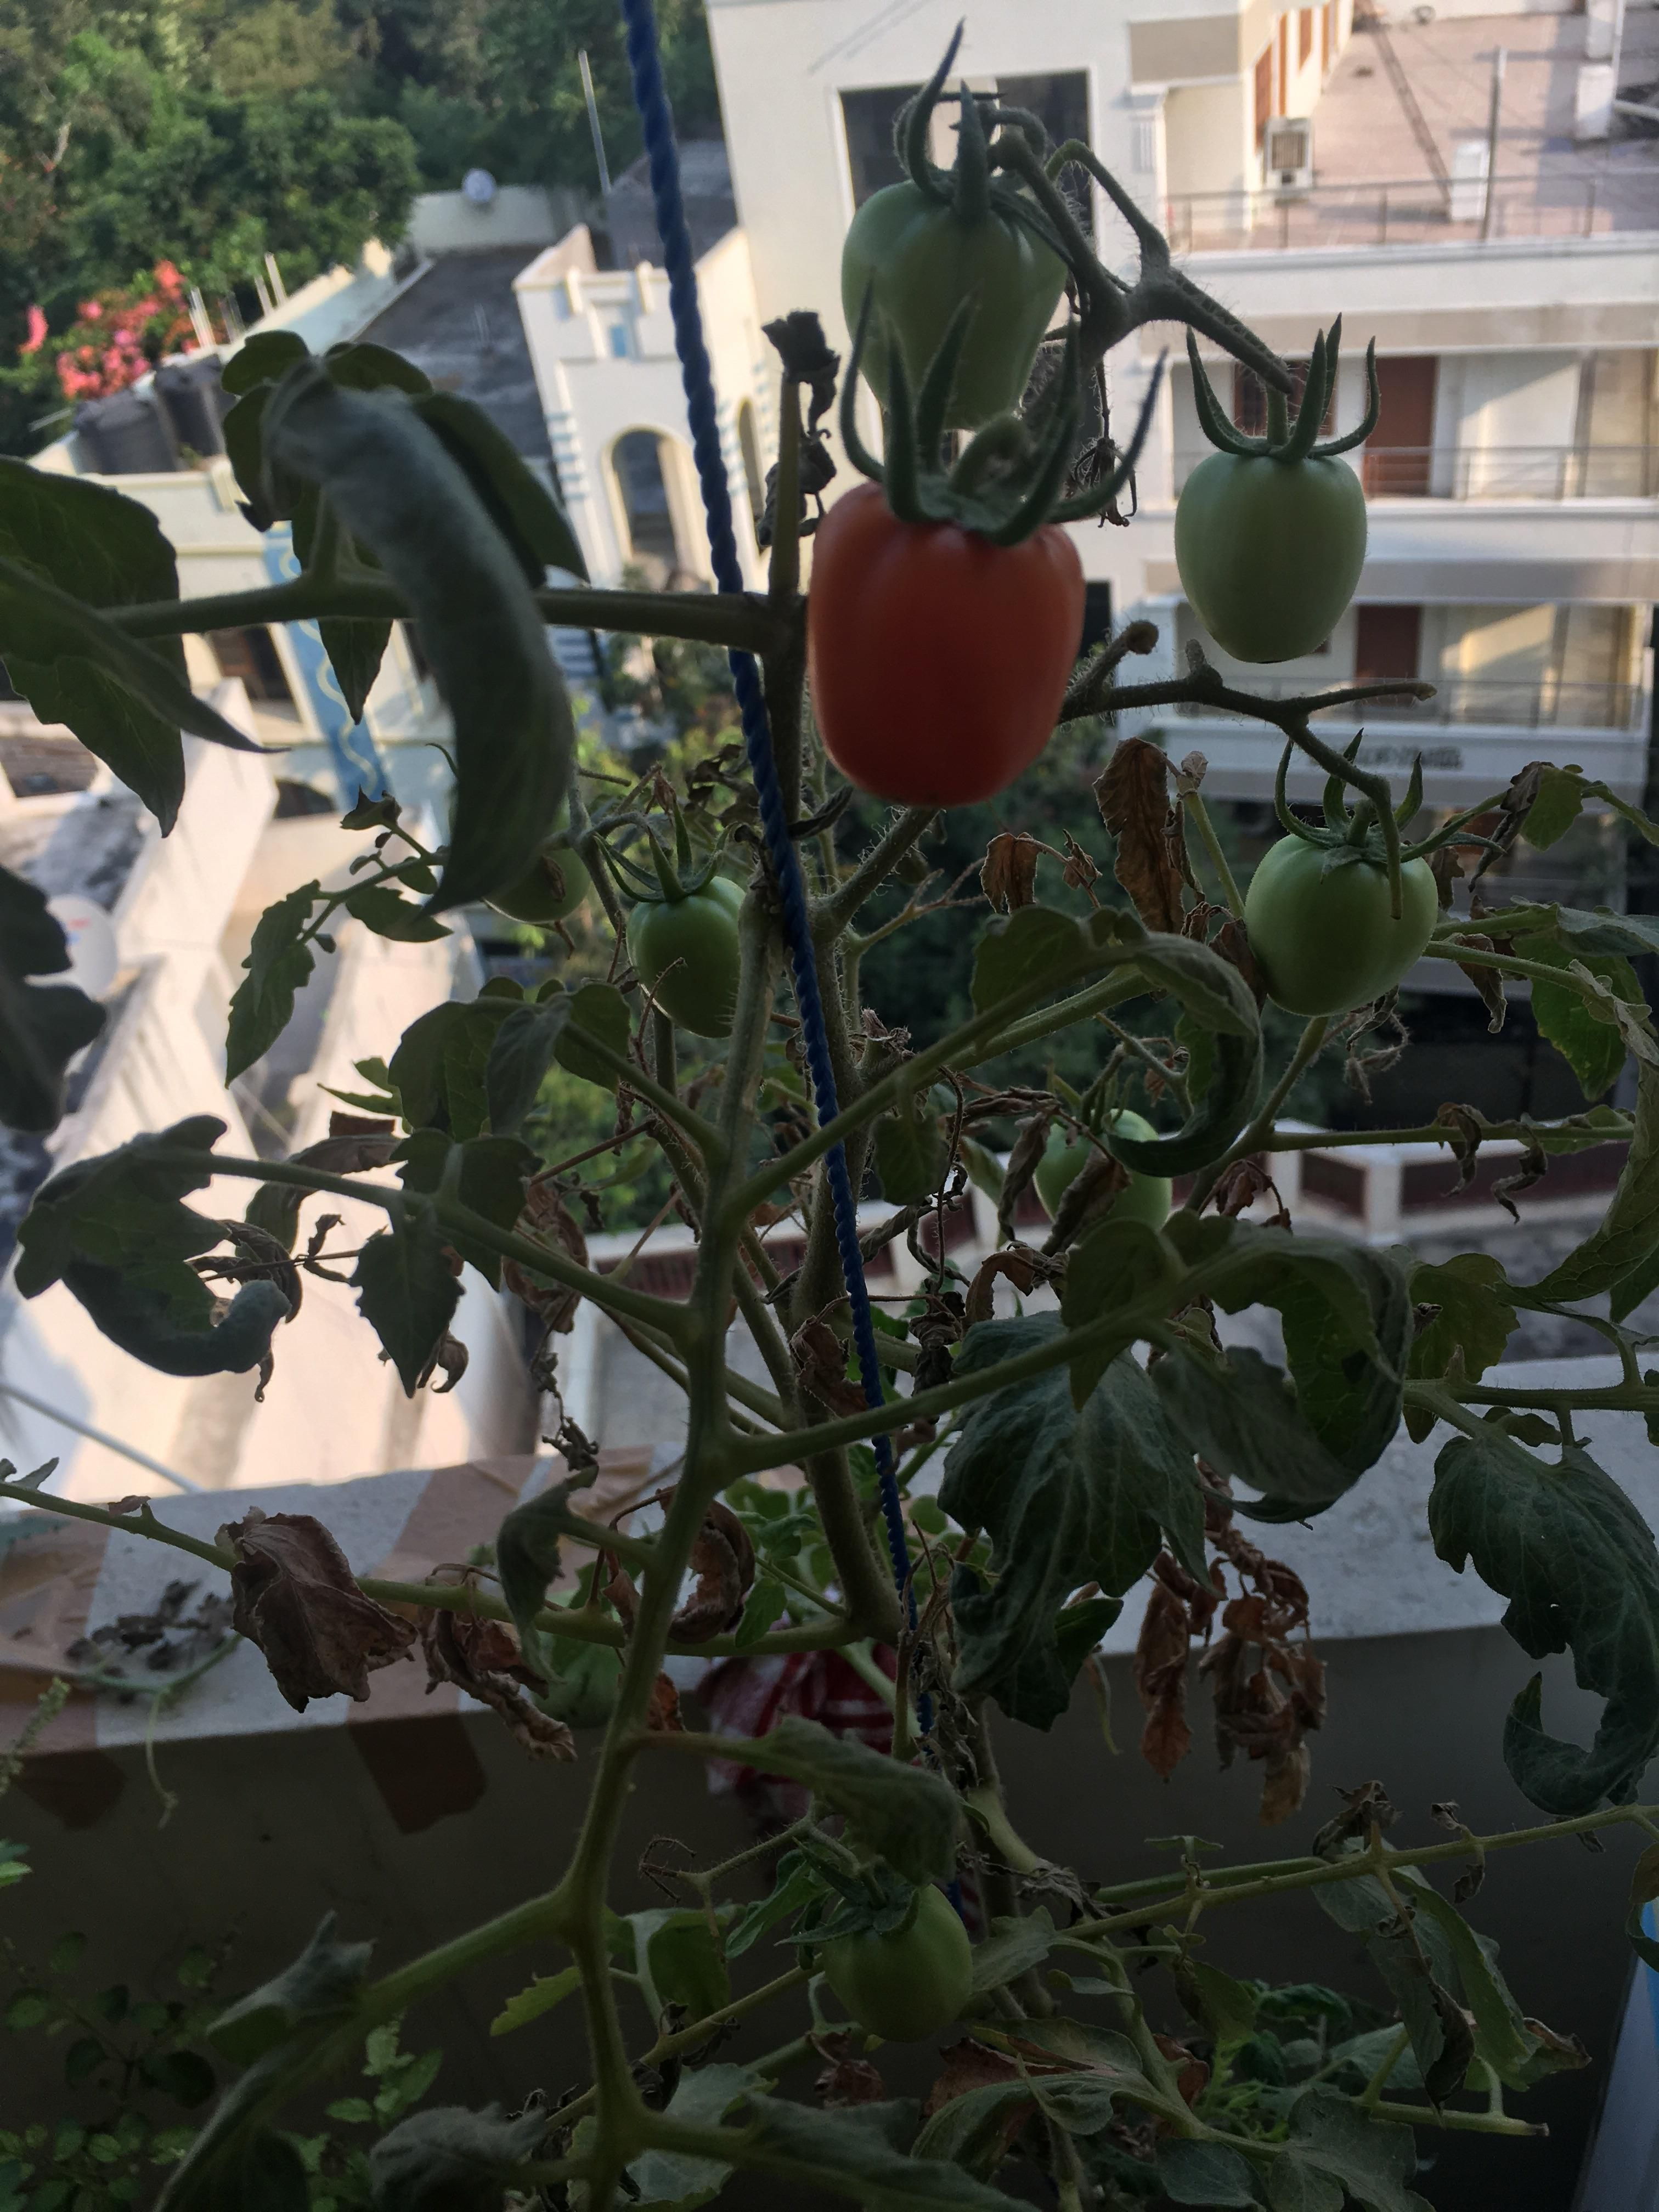 So One Of The Fruit With Bottom End Rot Is Changing Colors But Why Are Tomatoes Small Gardening Garden Diy Home Flowers Roses Nature